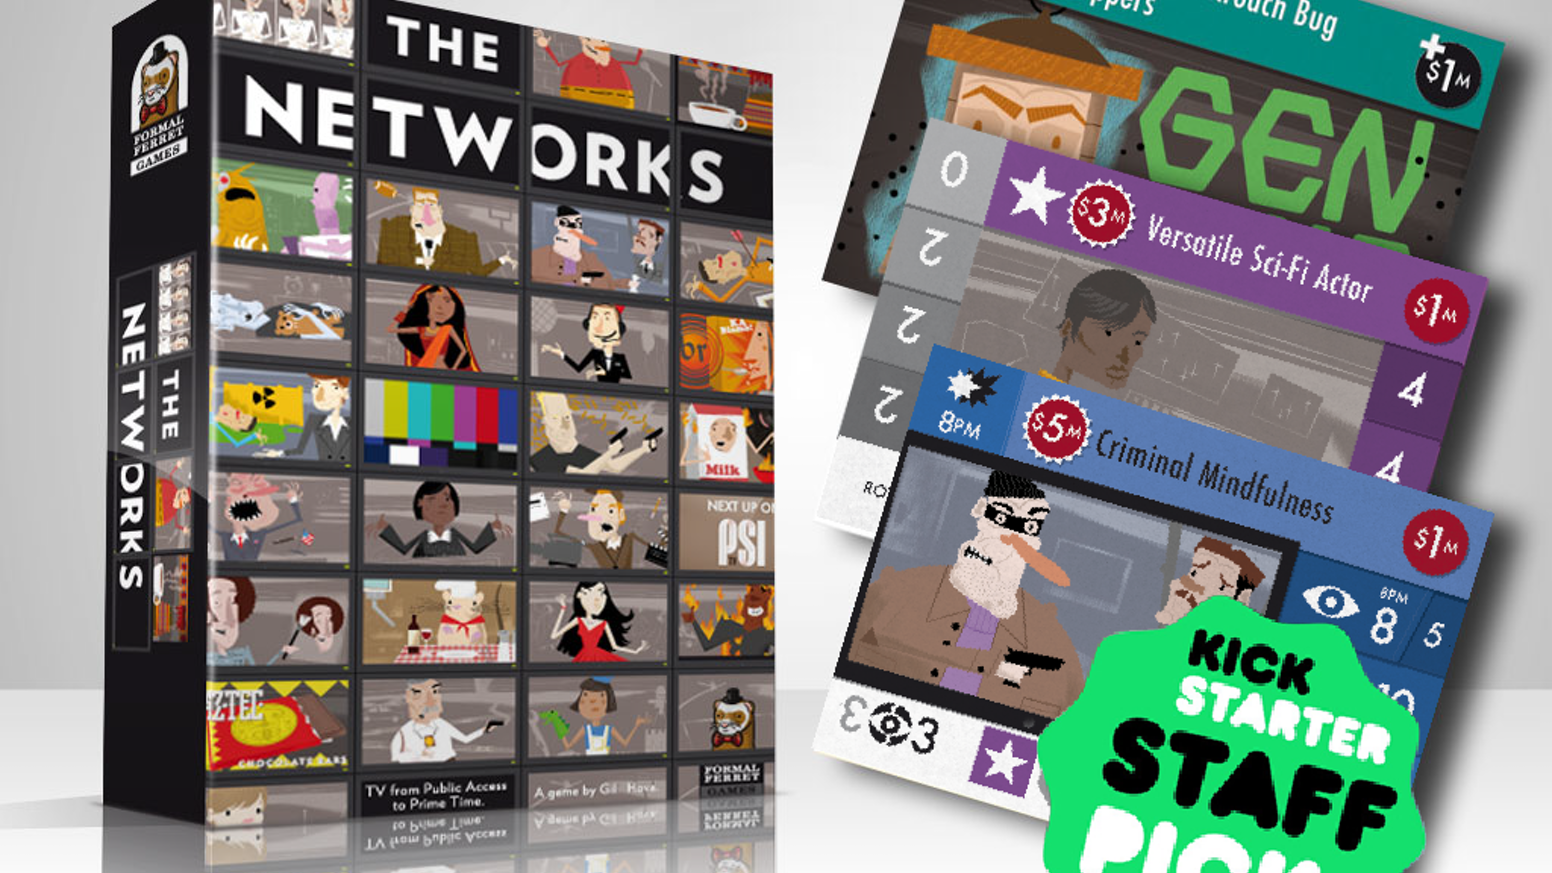 A tabletop strategy game where you acquire shows, stars, and ads to build the TV network with the most viewers.